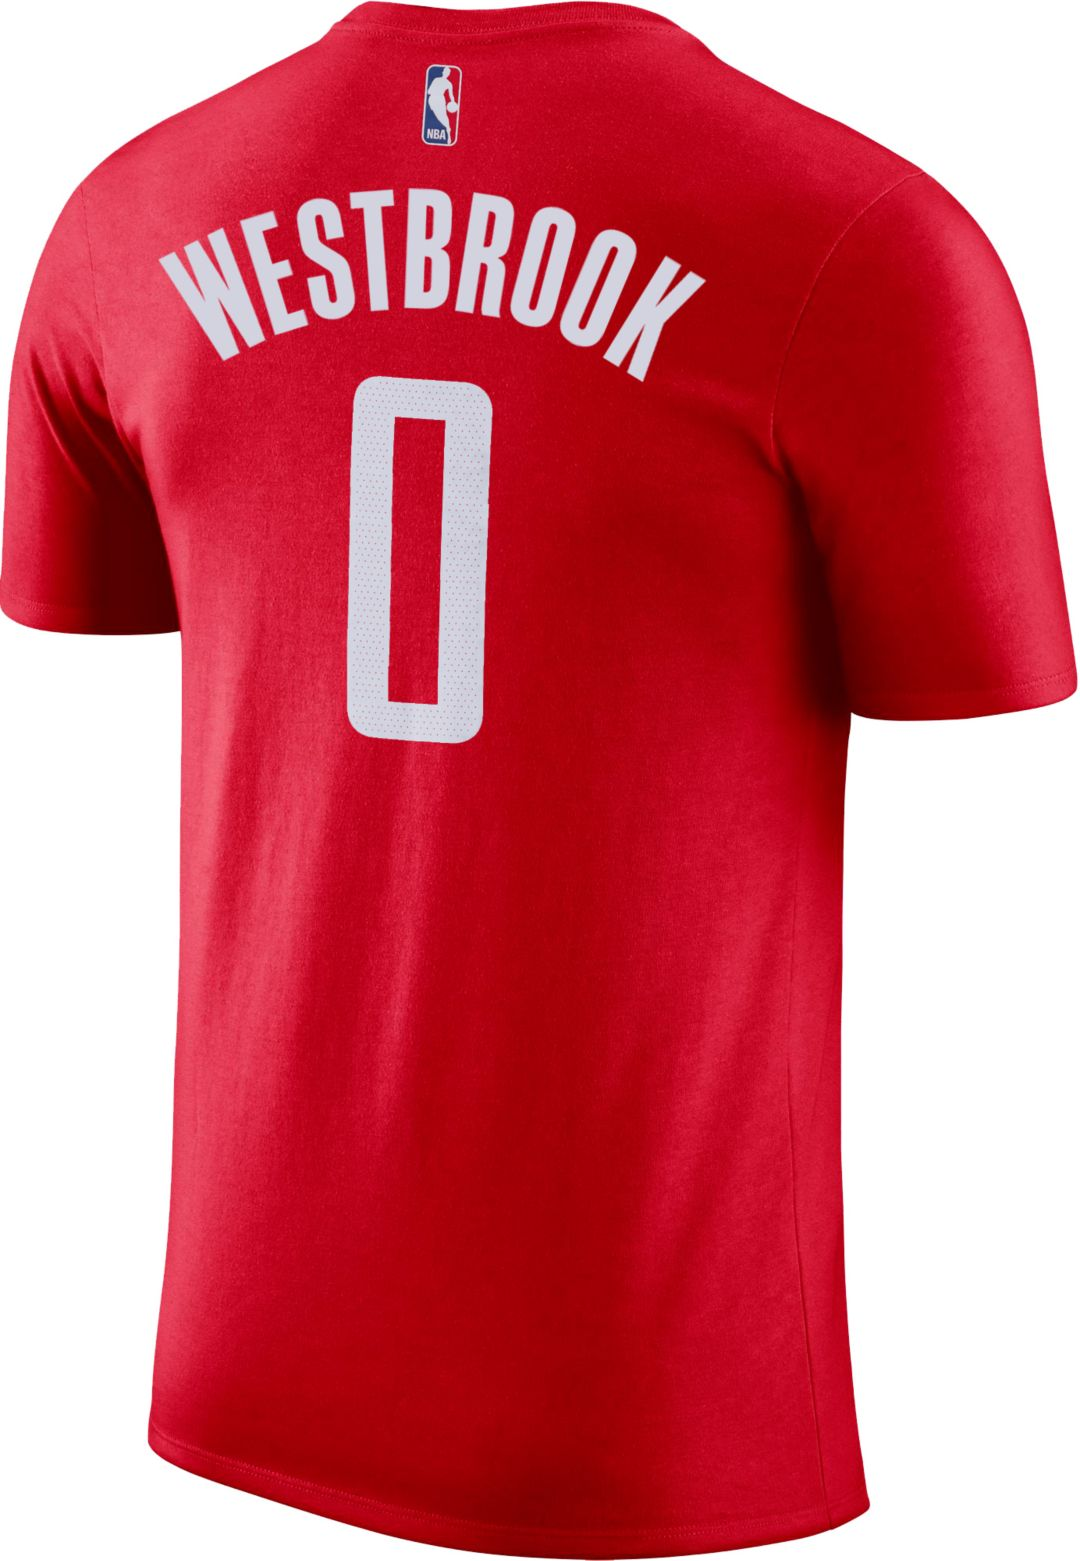 sale retailer fe608 7cb9e Nike Youth Houston Rockets Russell Westbrook #0 Dri-FIT Red T-Shirt